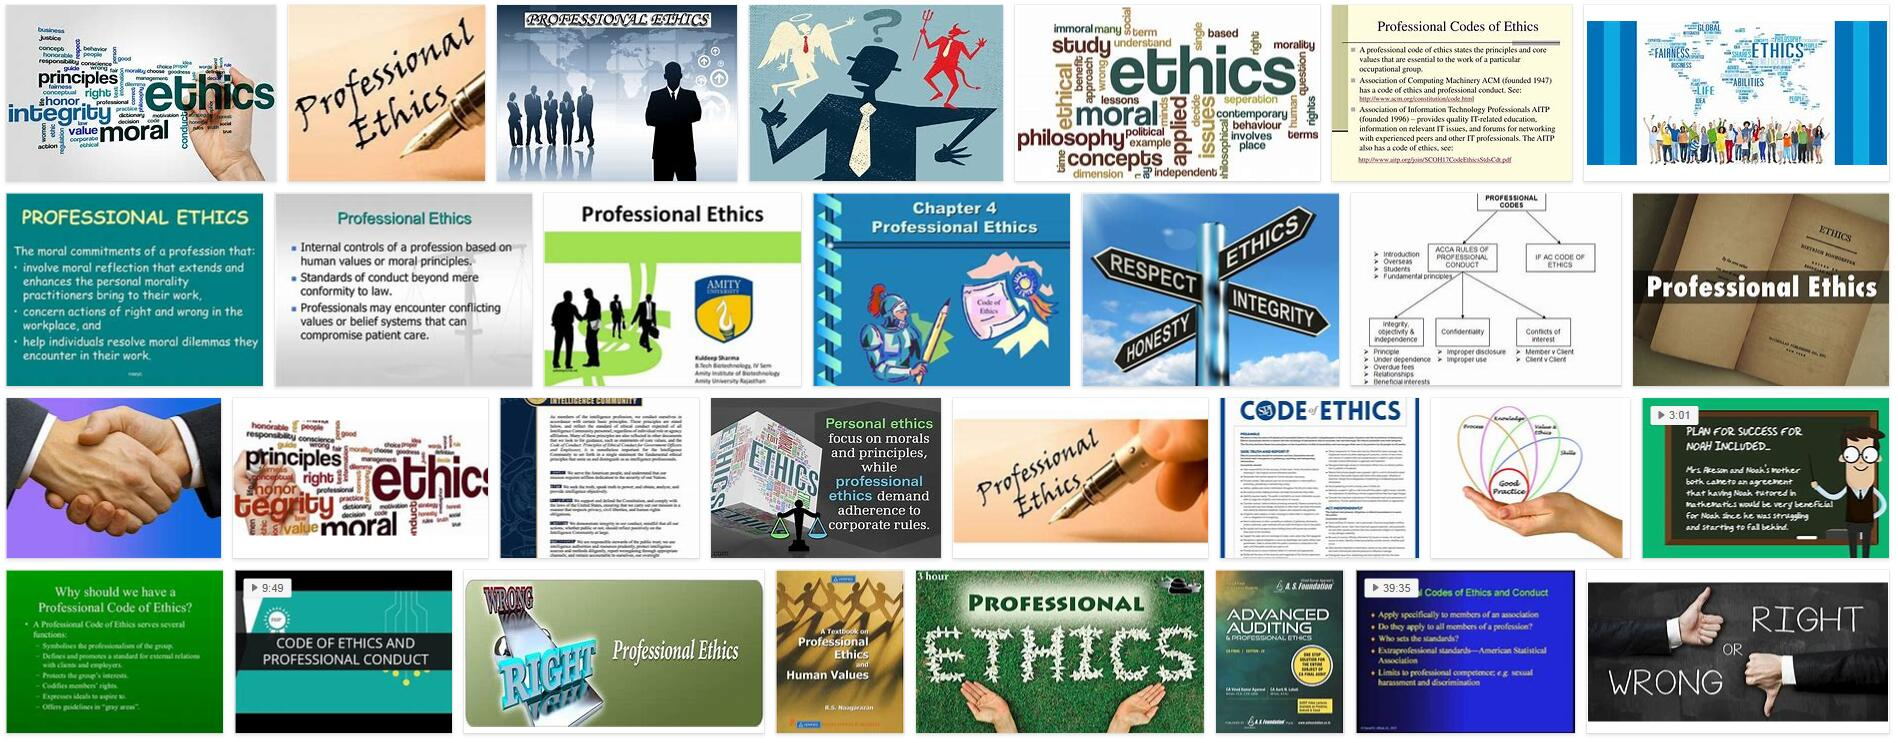 Professional Ethics Definition and Meaning